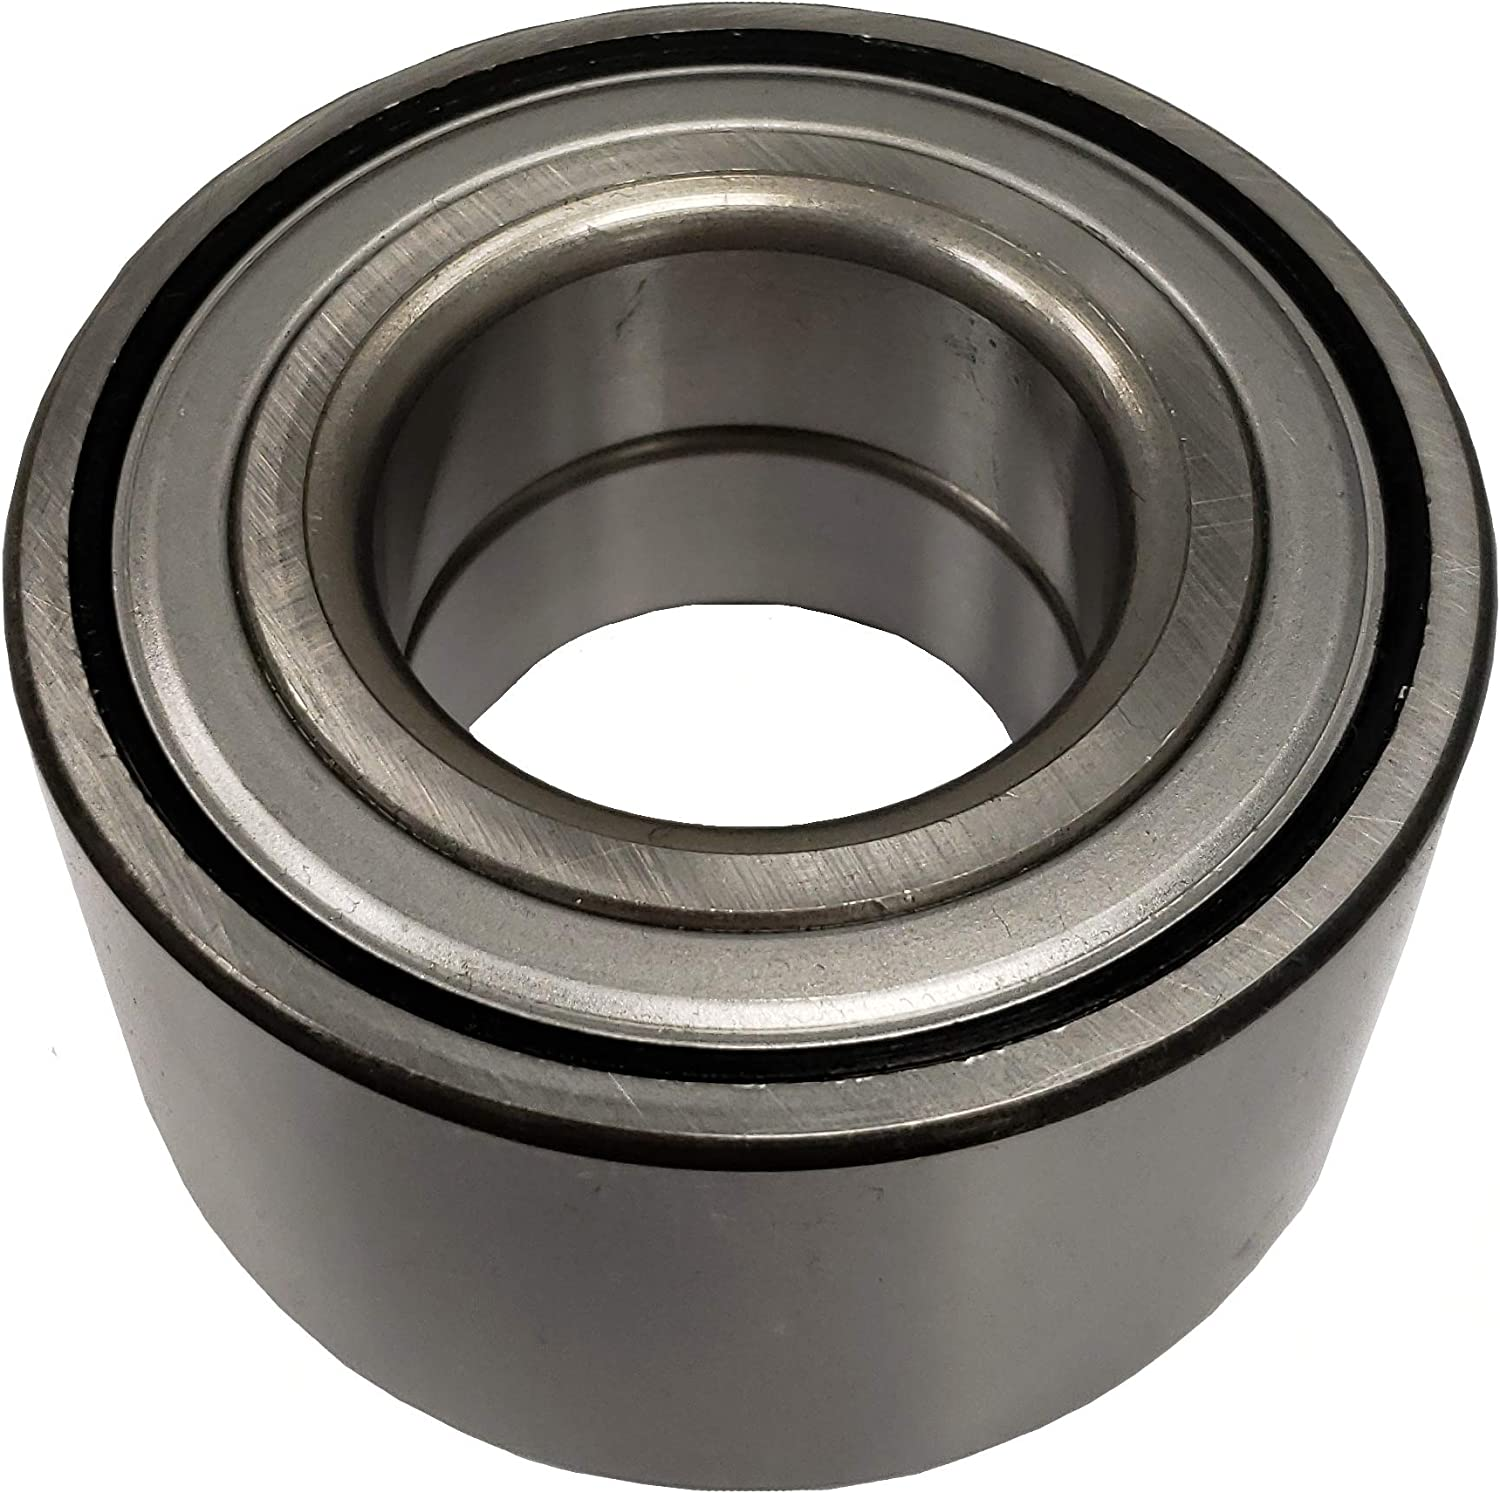 East Lake Axle front or rear wheel bearing set compatible with Honda Talon//Pioneer 1000 1000-5 1000R 1000X 1000X-4 2016 2017 2018 2019 2020